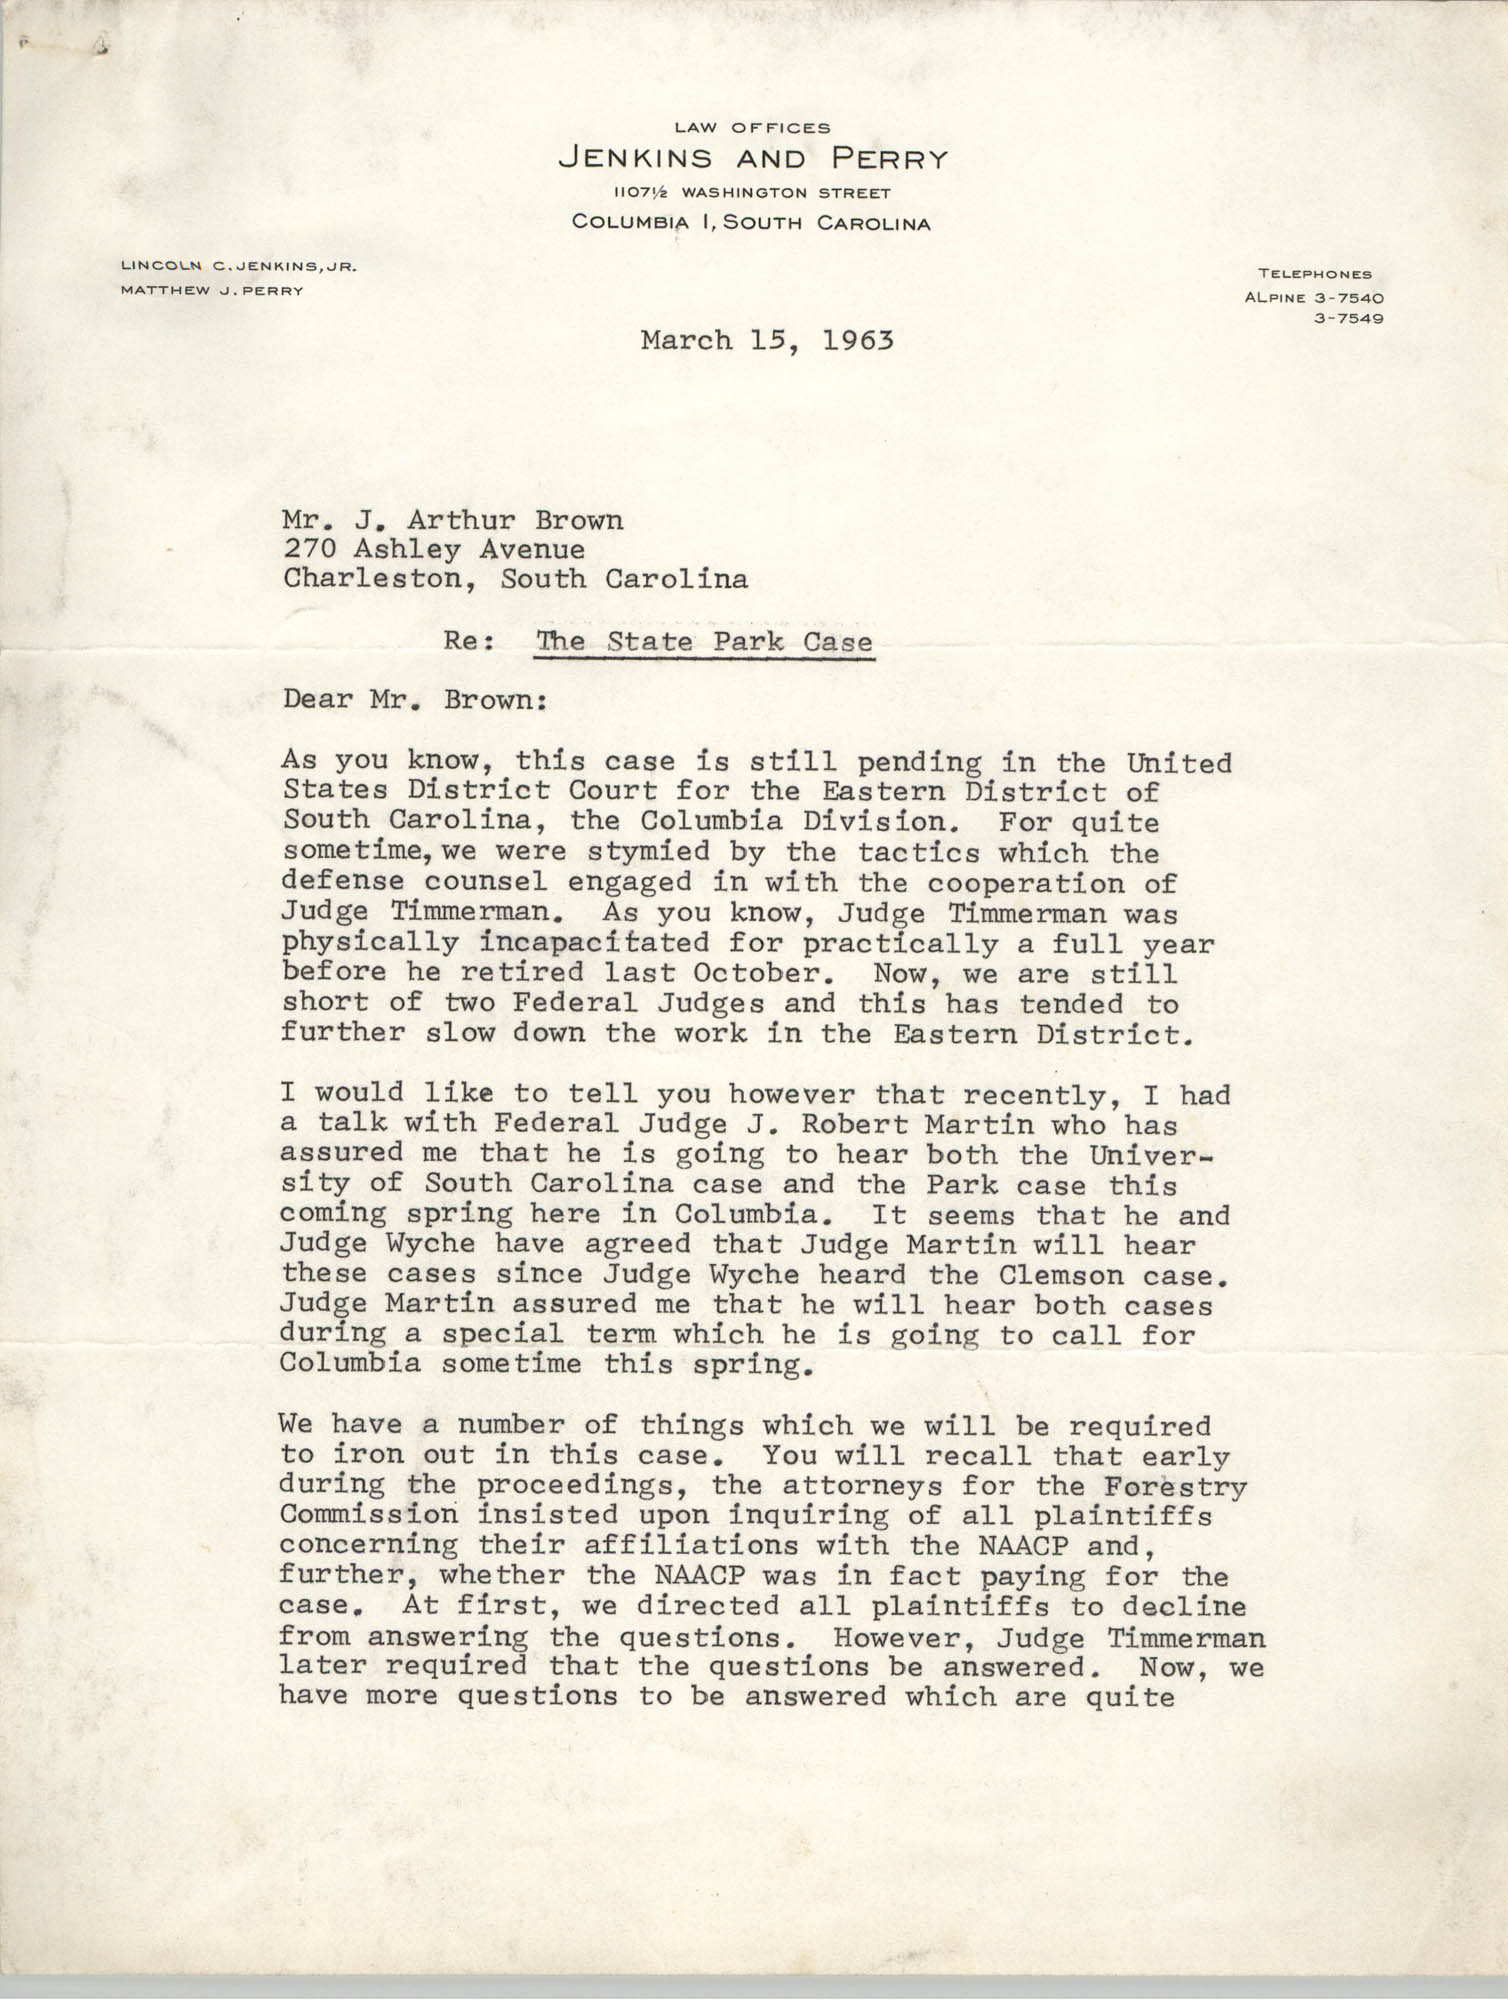 Letter from Matthew J. Perry to J. Arthur Brown, March 15, 1963